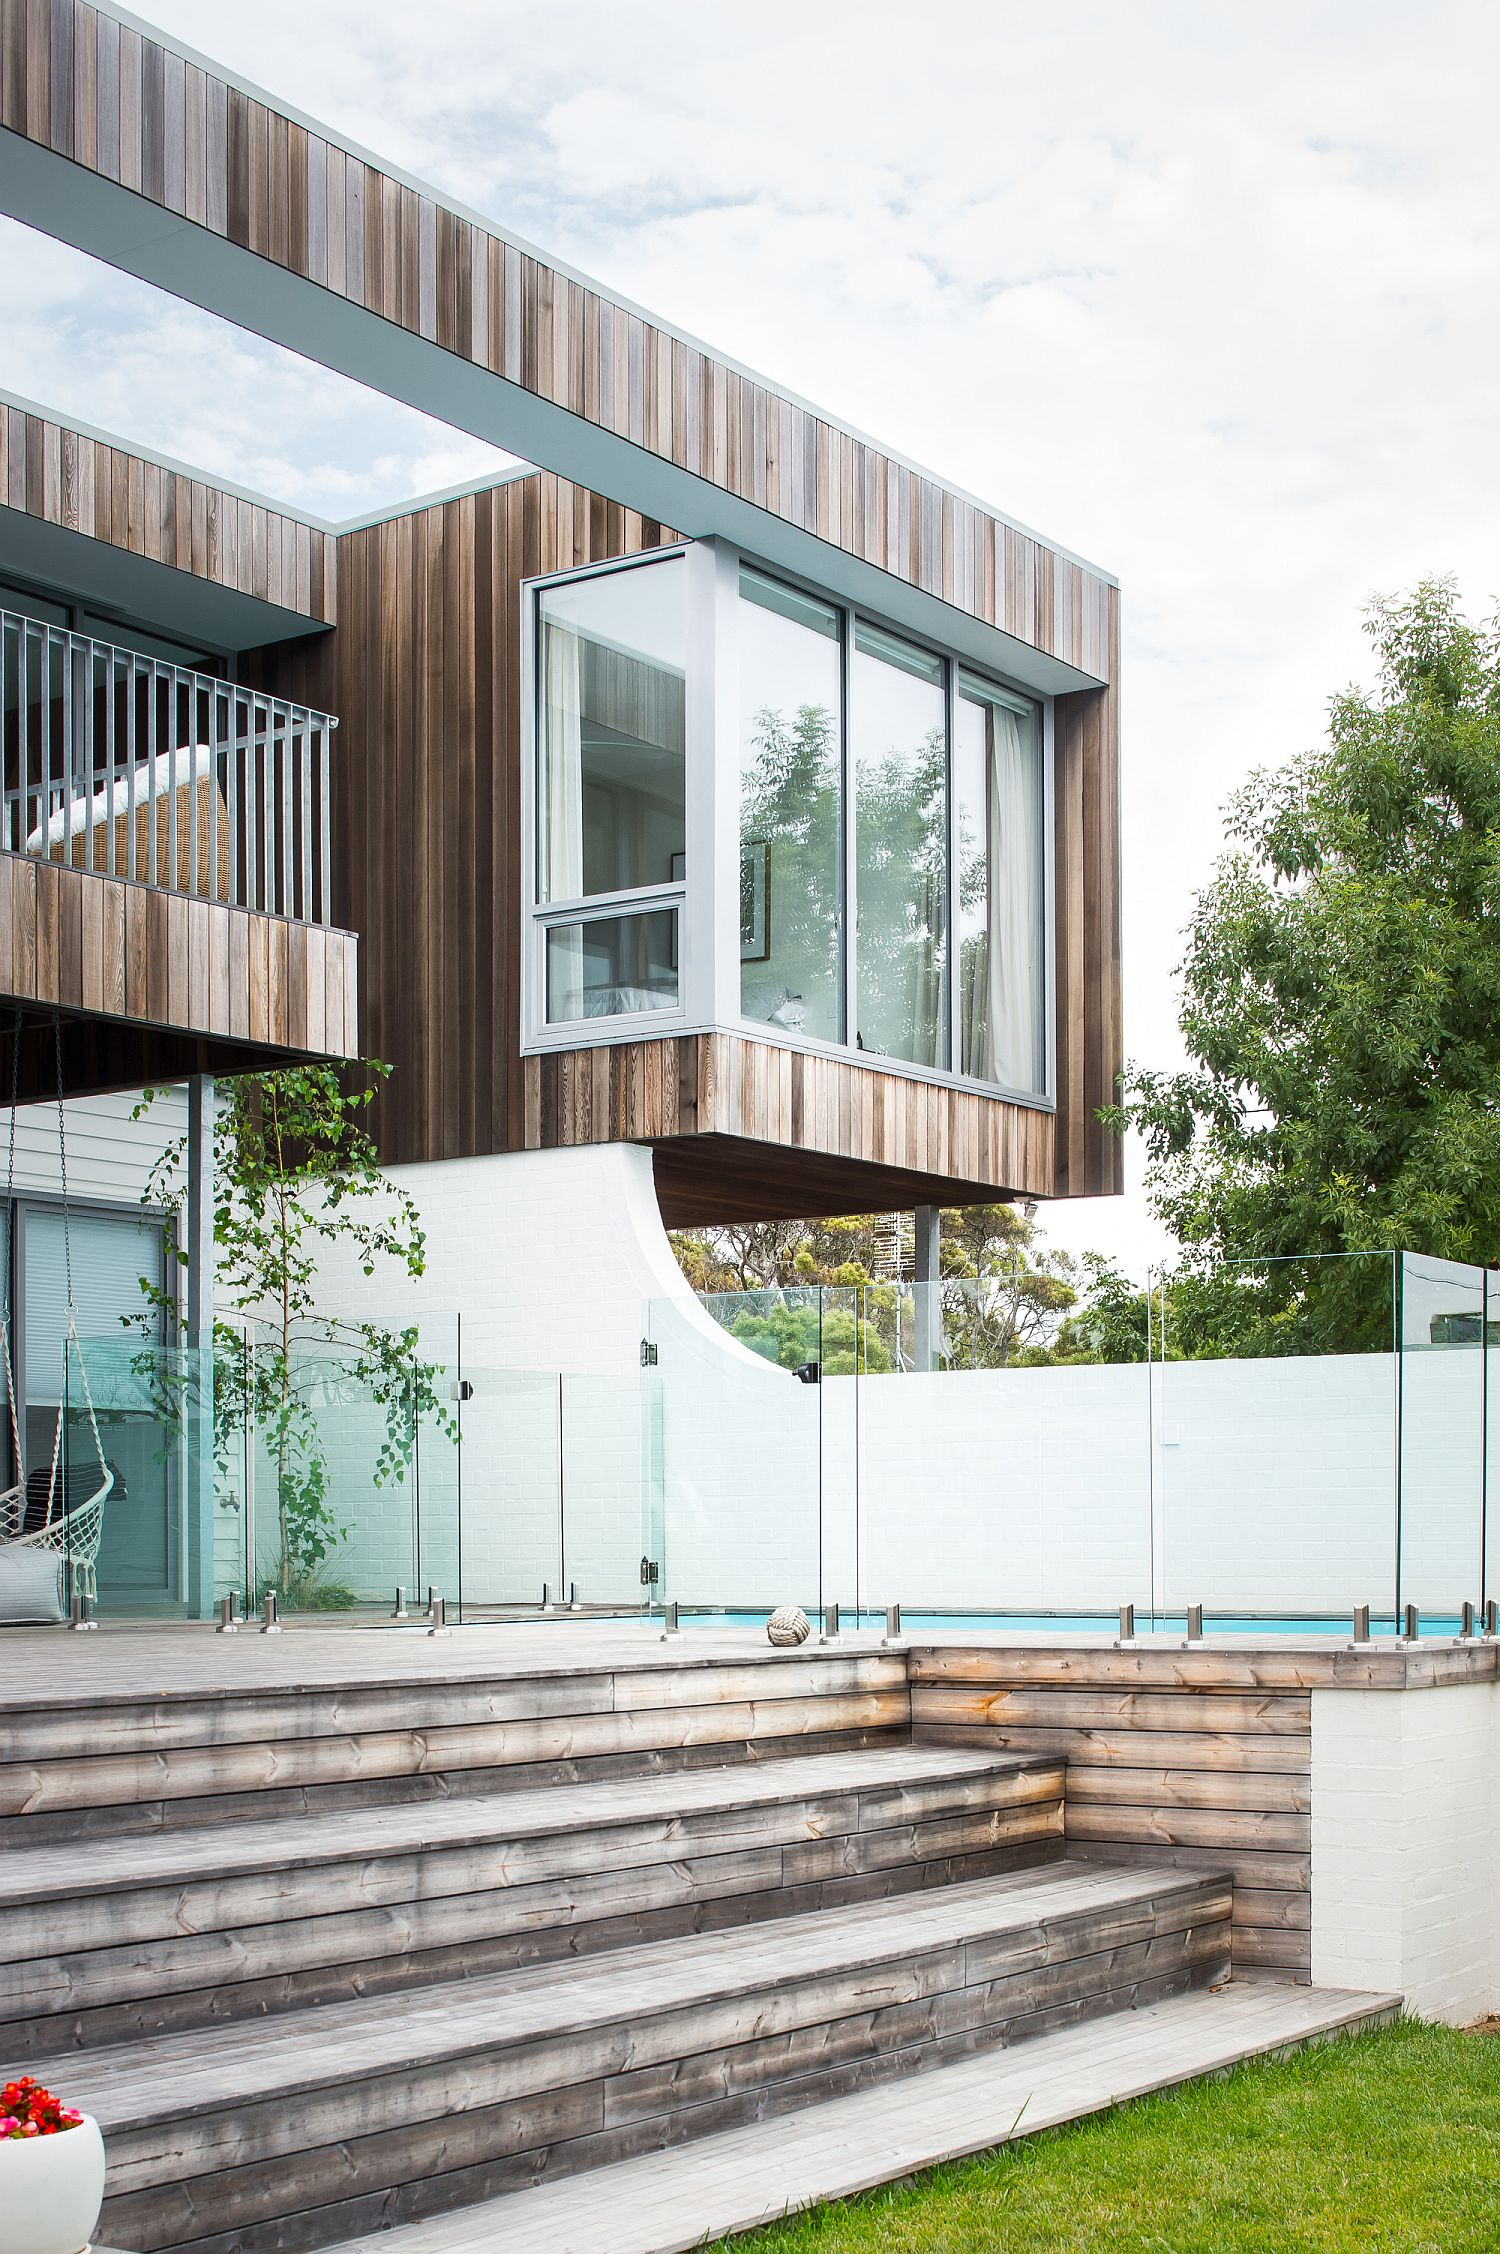 Spacious-wooden-deck-of-the-house-extends-the-living-area-into-the-garden